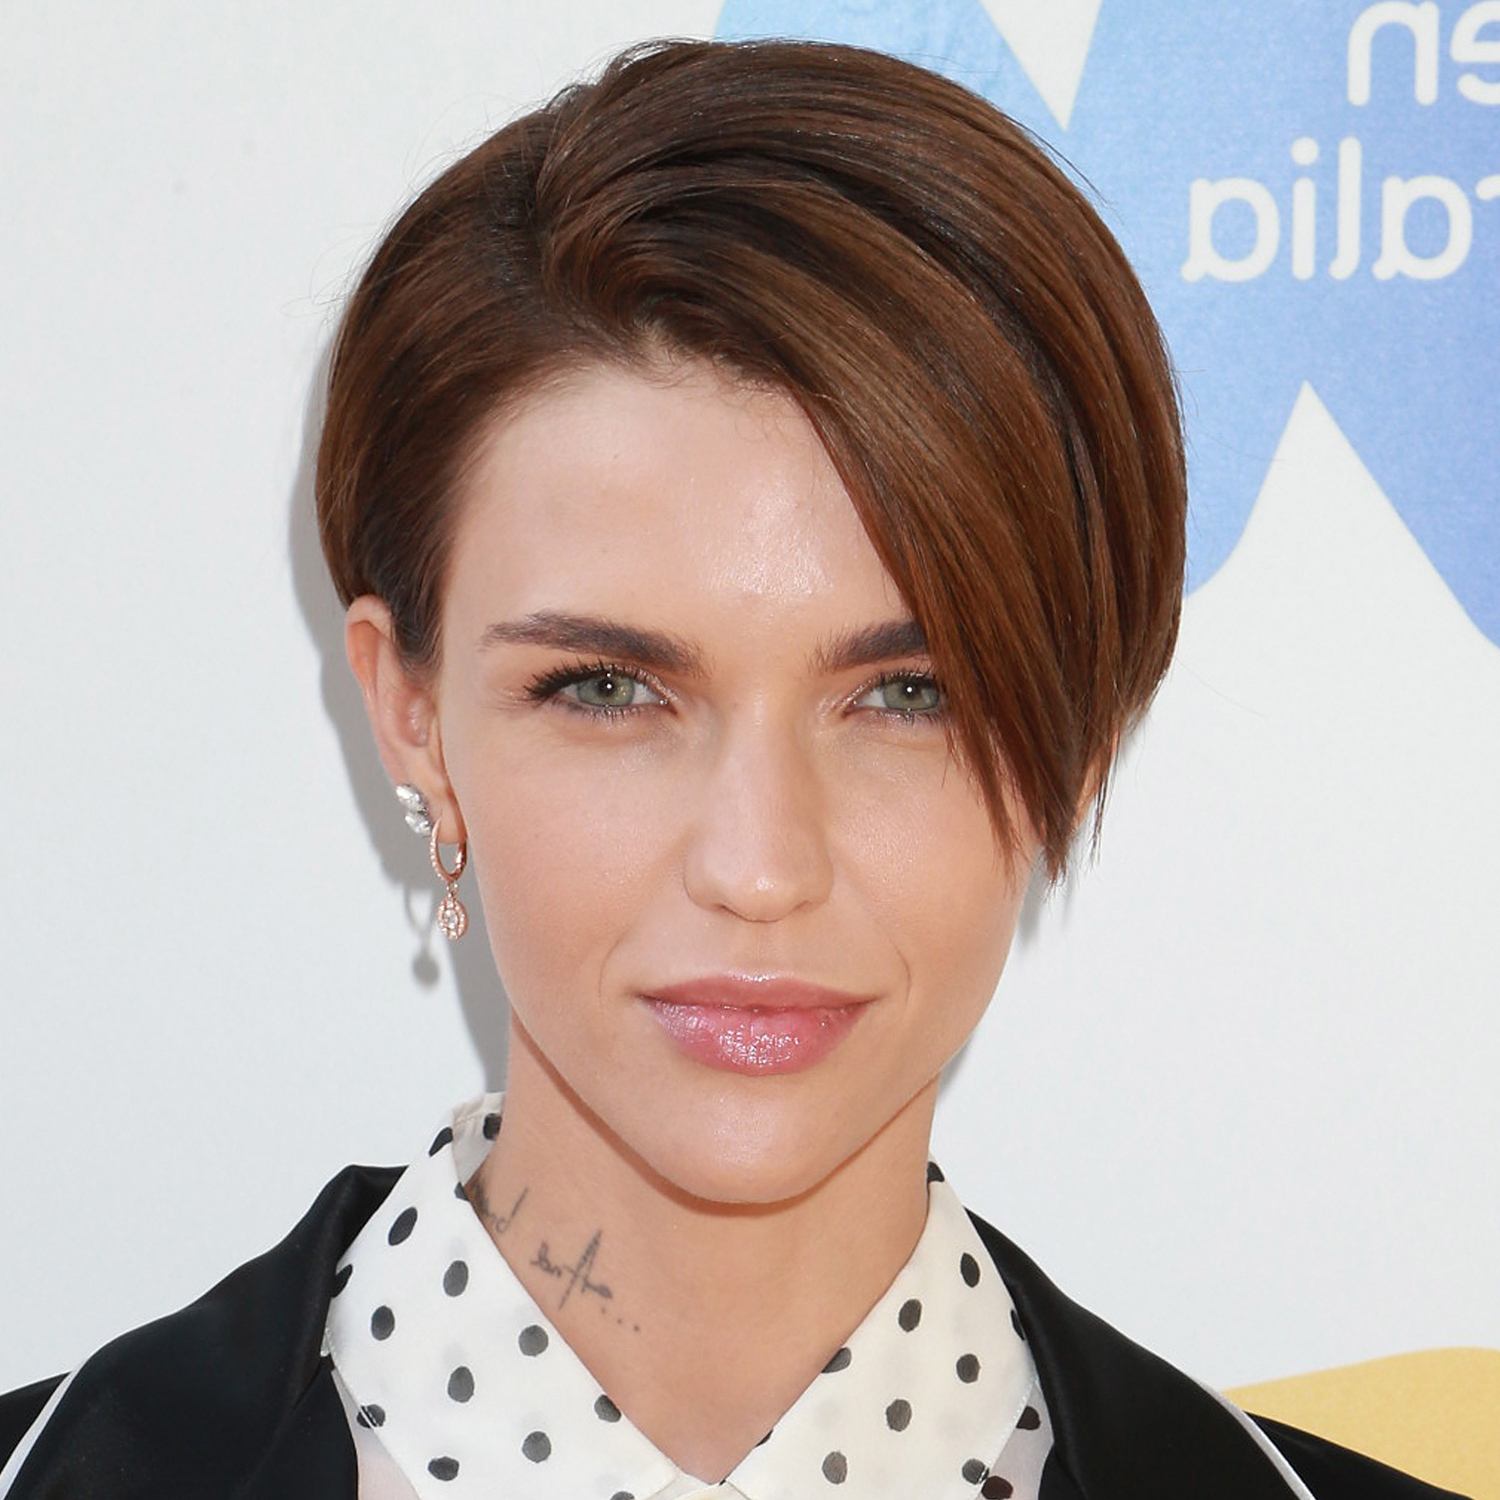 7 Of The Best Short Haircuts To Try This Summer | Beautyheaven Throughout Ruby Rose Short Hairstyles (Gallery 24 of 25)